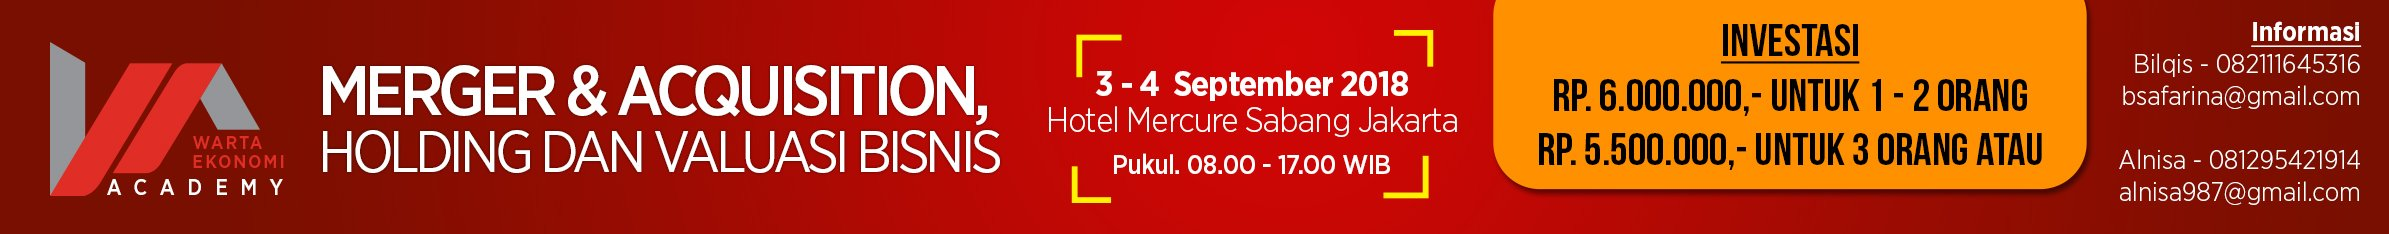 Merger & Acquisition, Holding, dan Valuasi Bisnis, Mercure